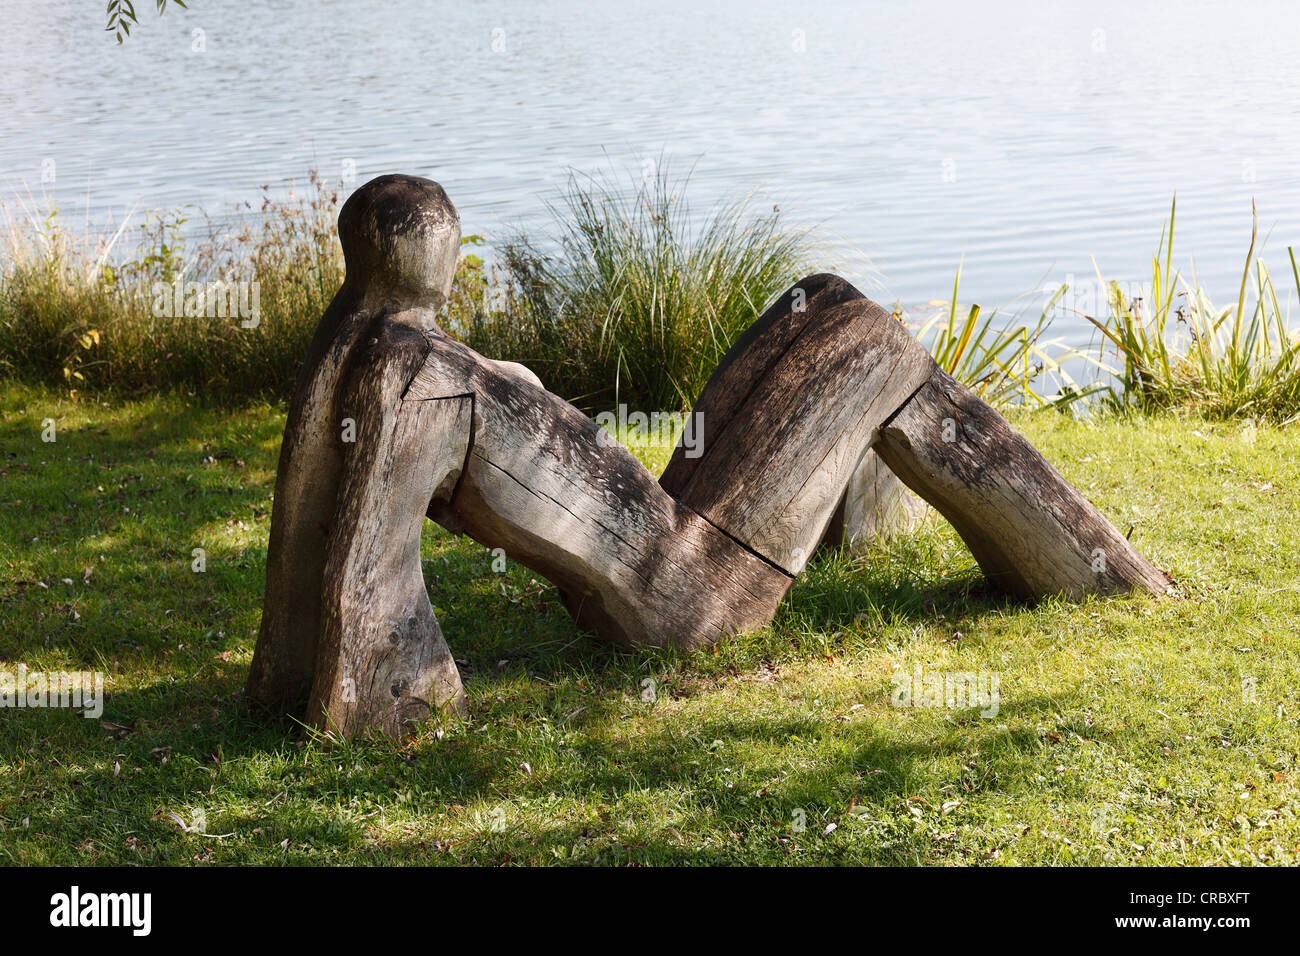 Sculpture from Galerie Risse gallery, Lake Wessling, Wessling, Fuenfseenland, Five Lakes district, Upper Bavaria, - Stock Image